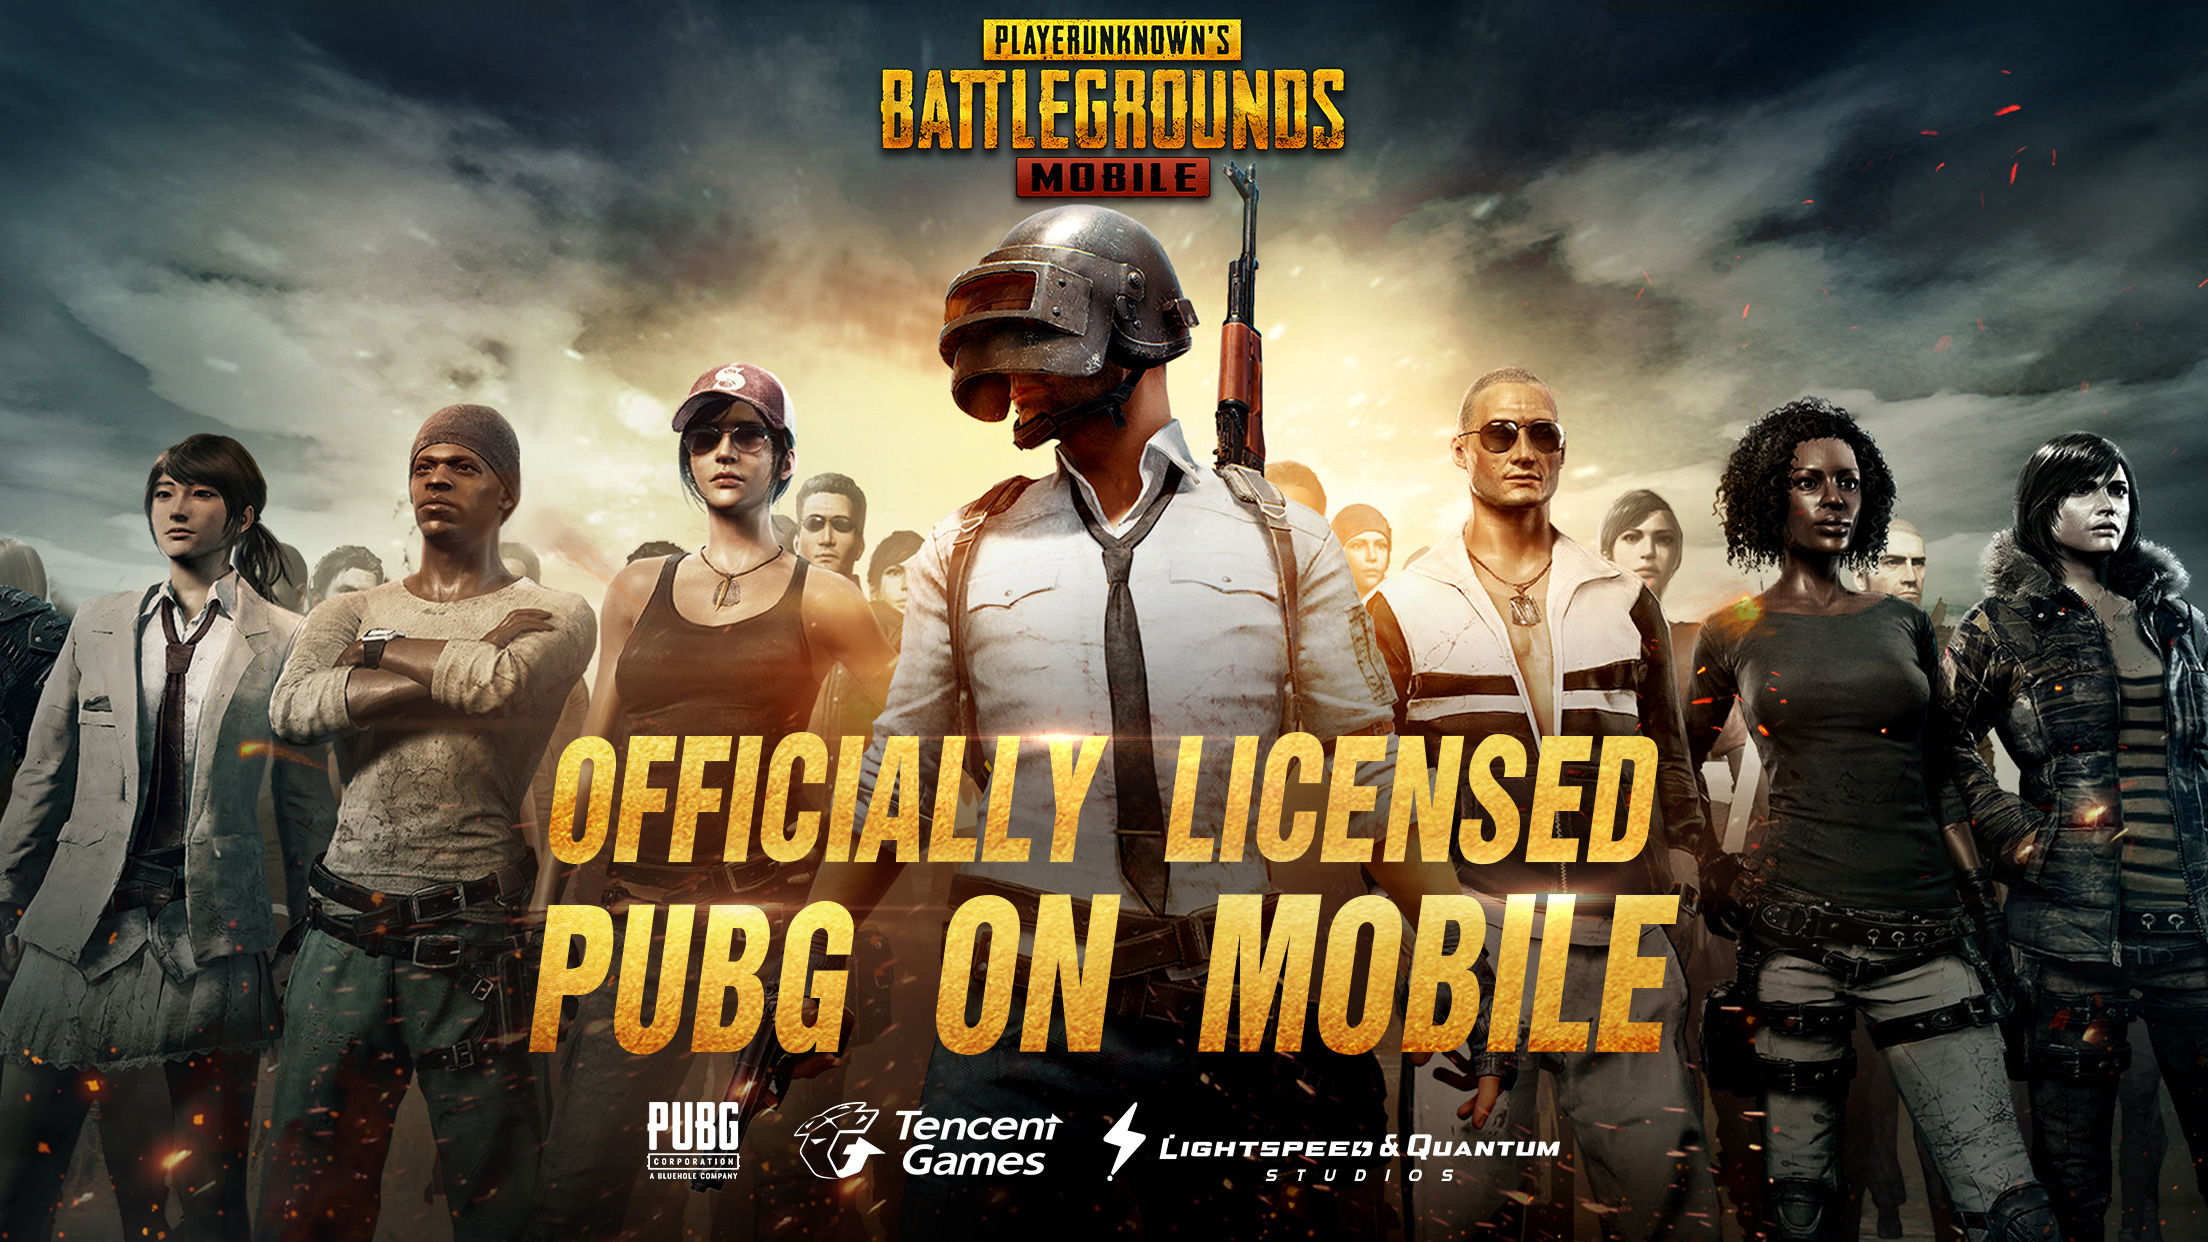 PUBG Mobile' has been pulled in China and replaced with